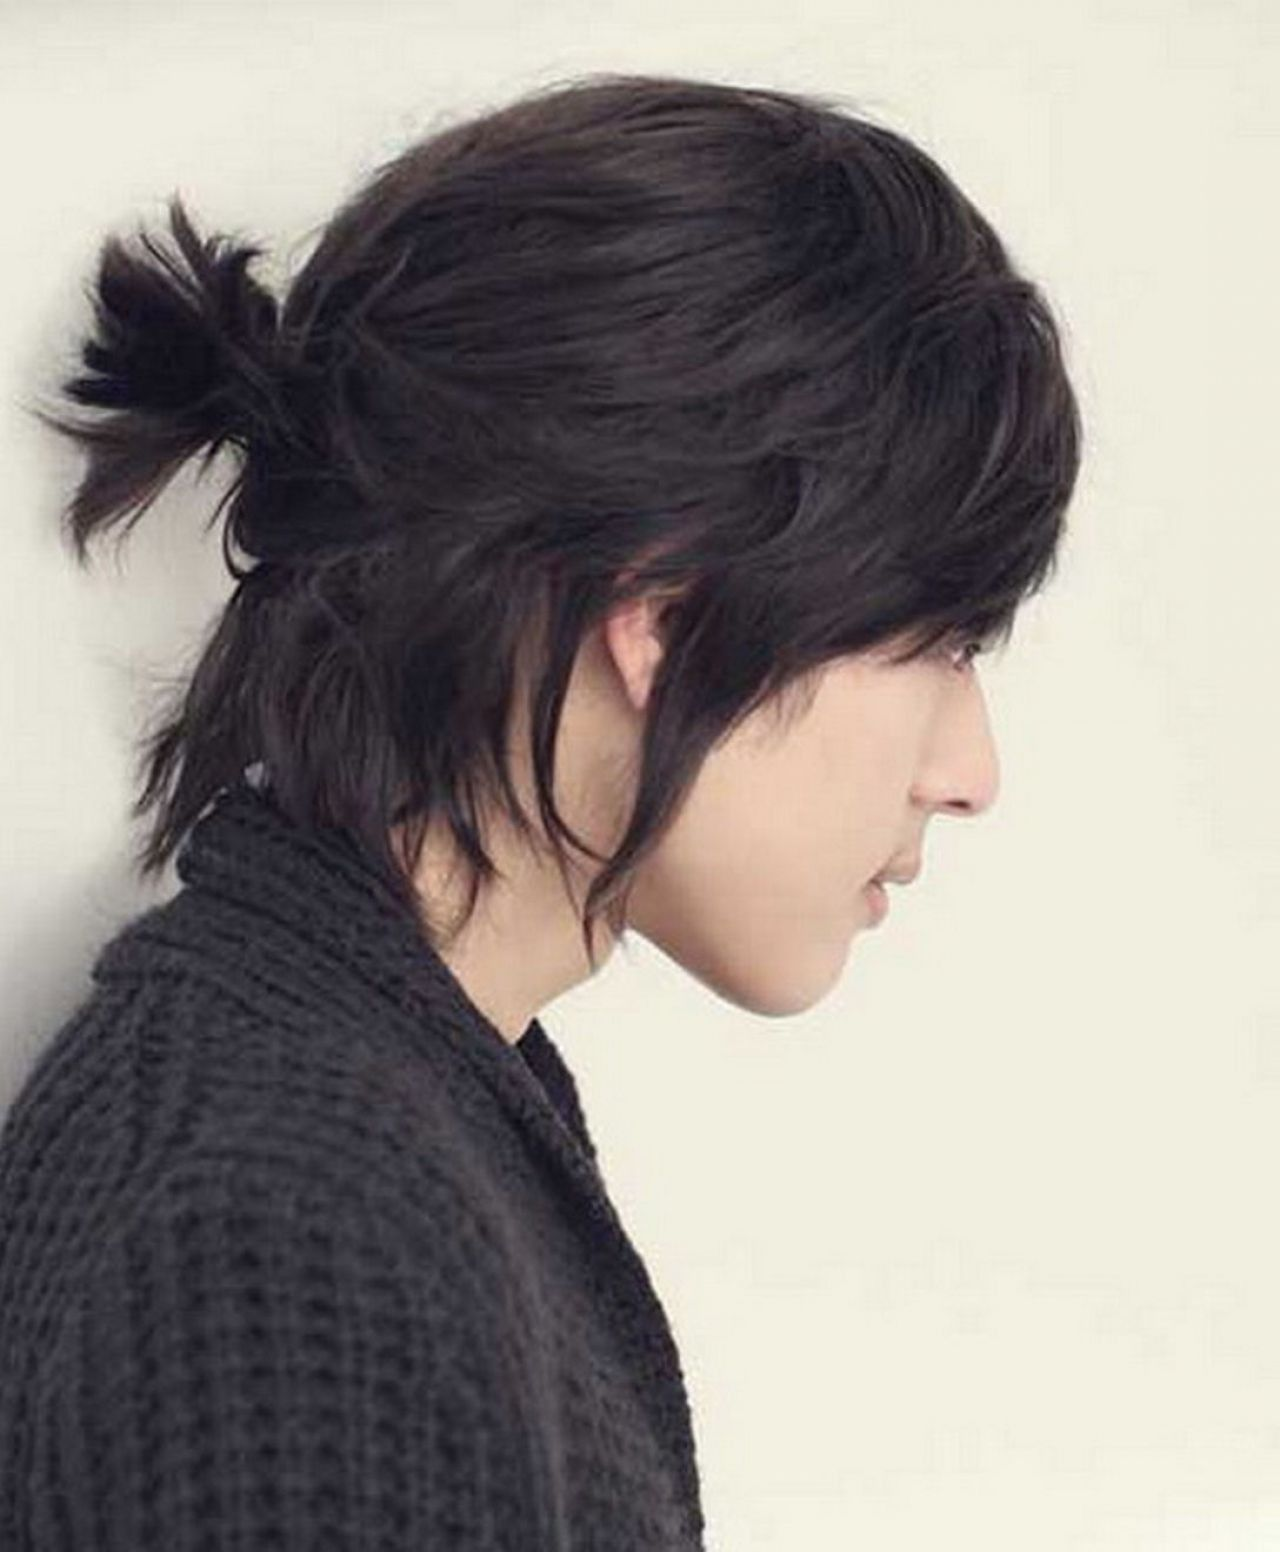 Unique Korean Boy Emo Hairstyle Unique Hair Style Asian Long Hair Long Hair Styles Asian Haircut